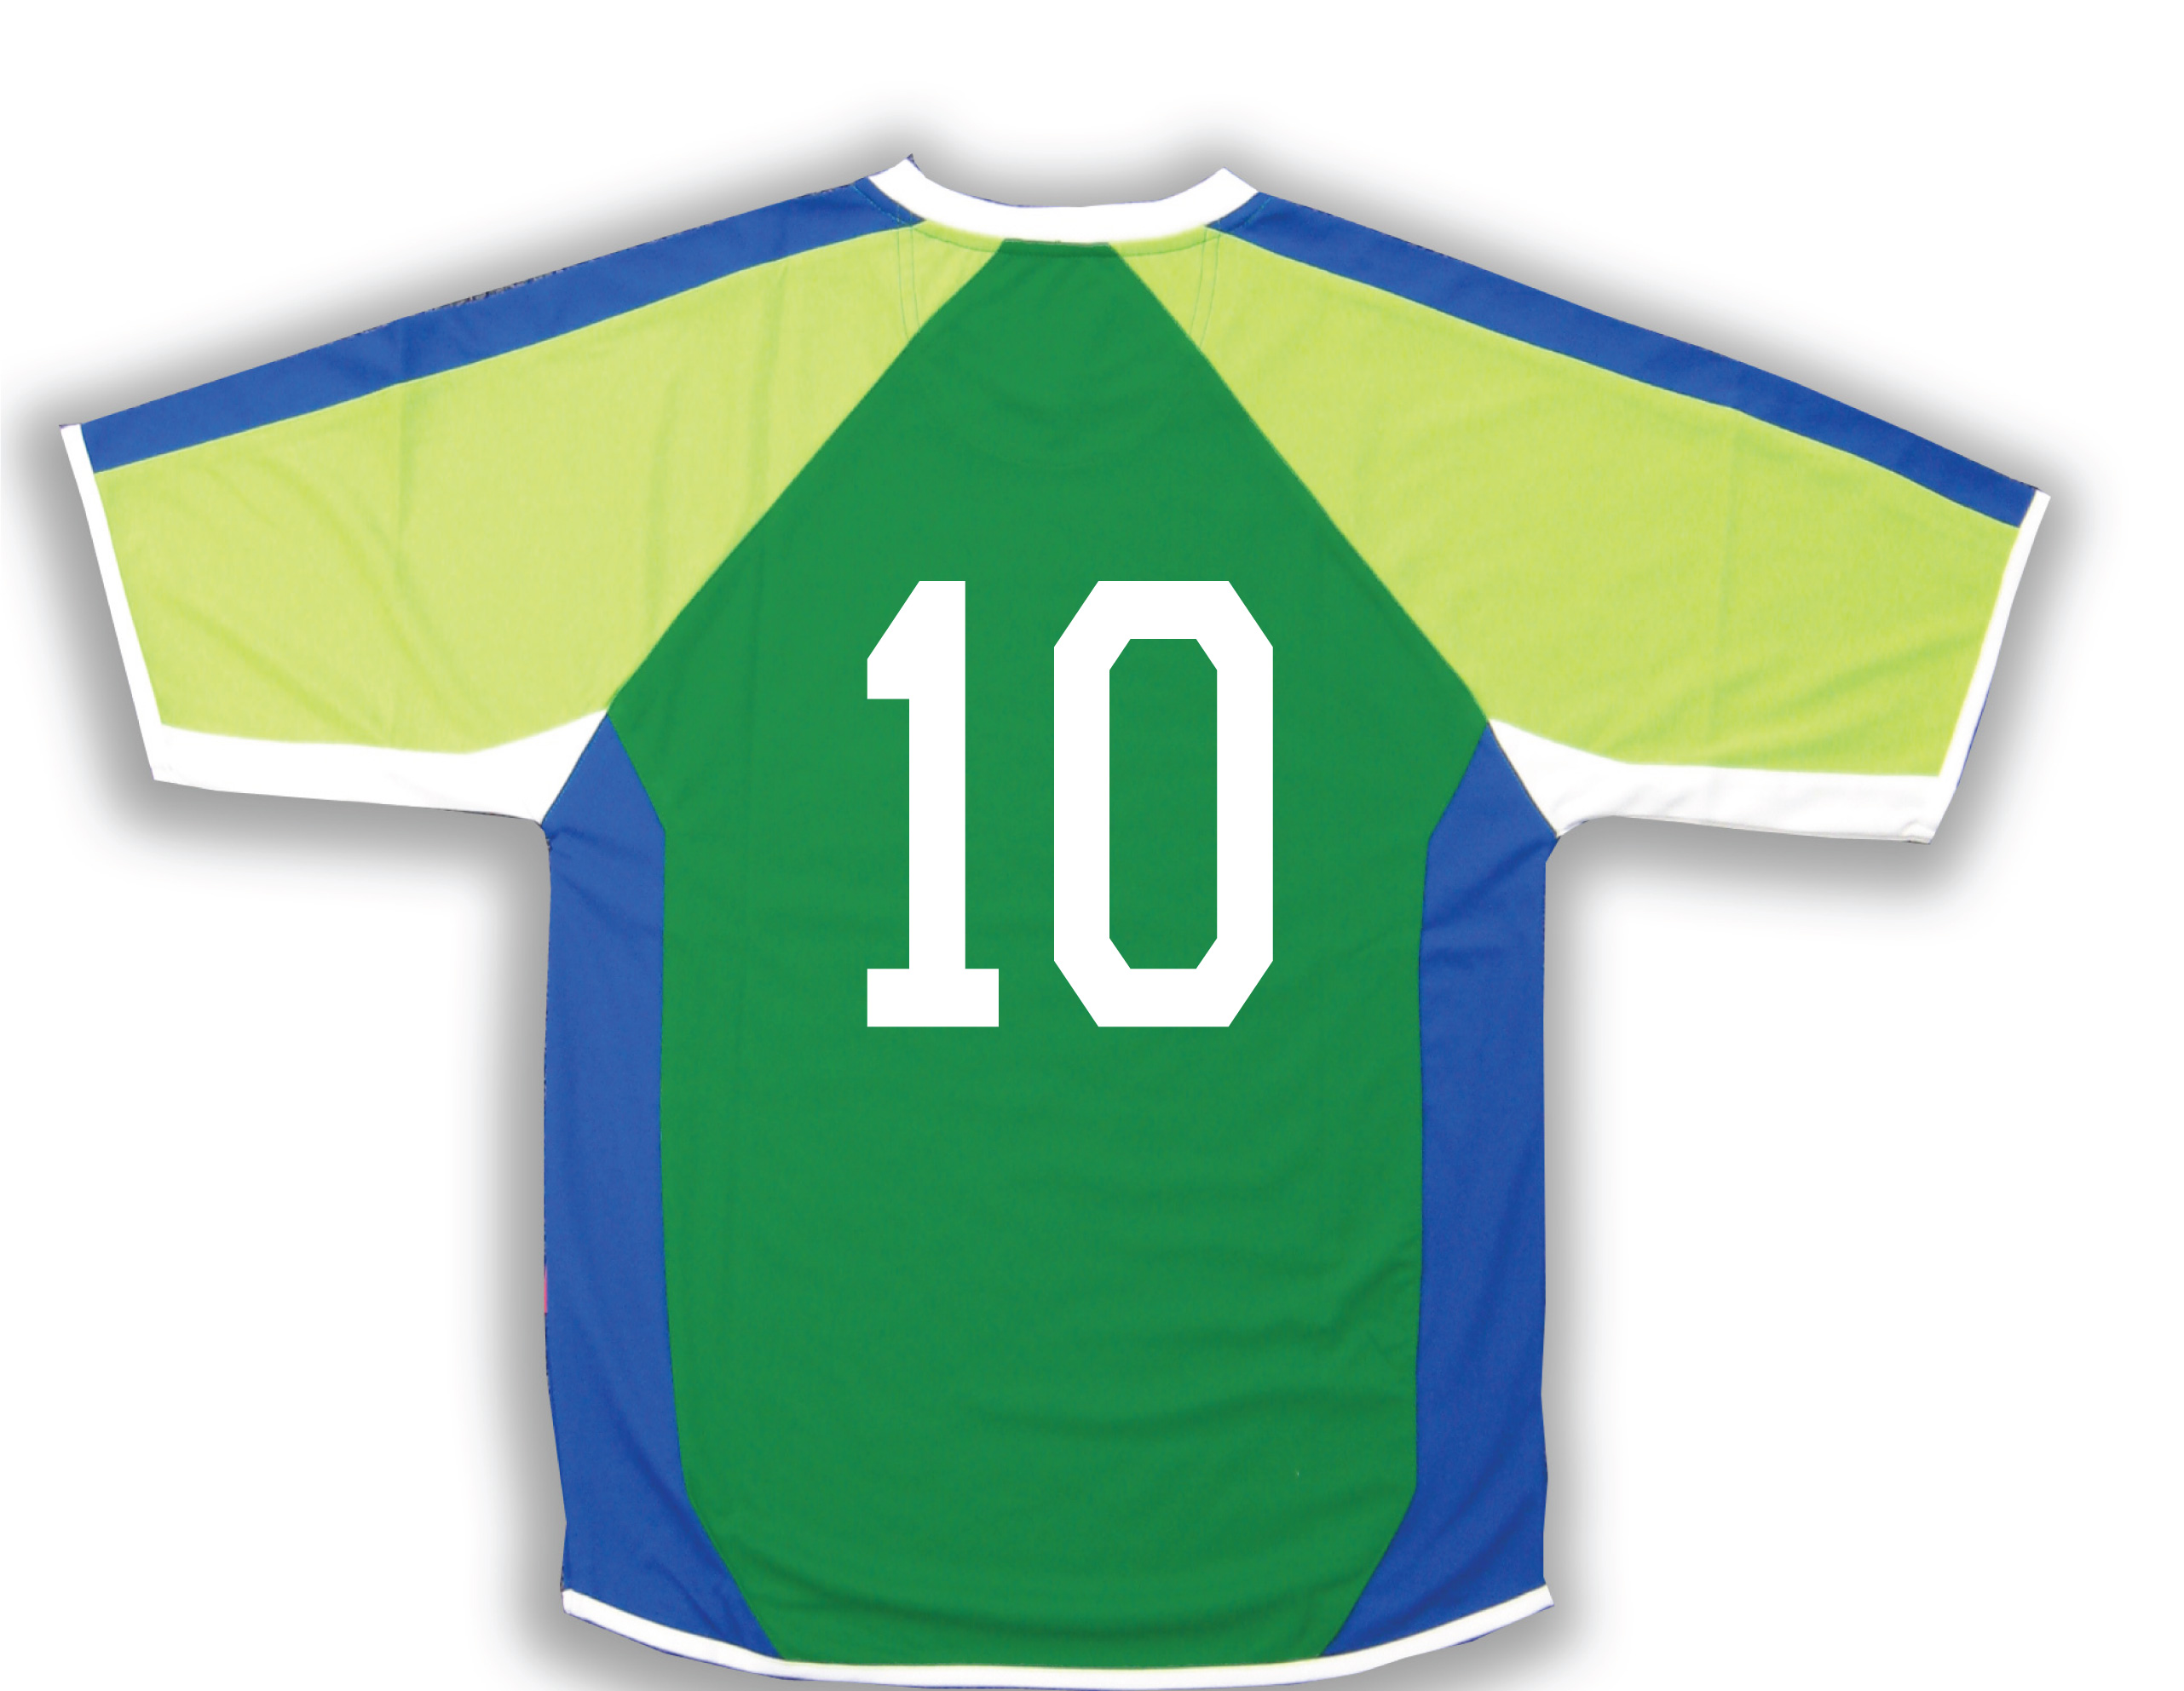 Seattle soccer jersey with number on back